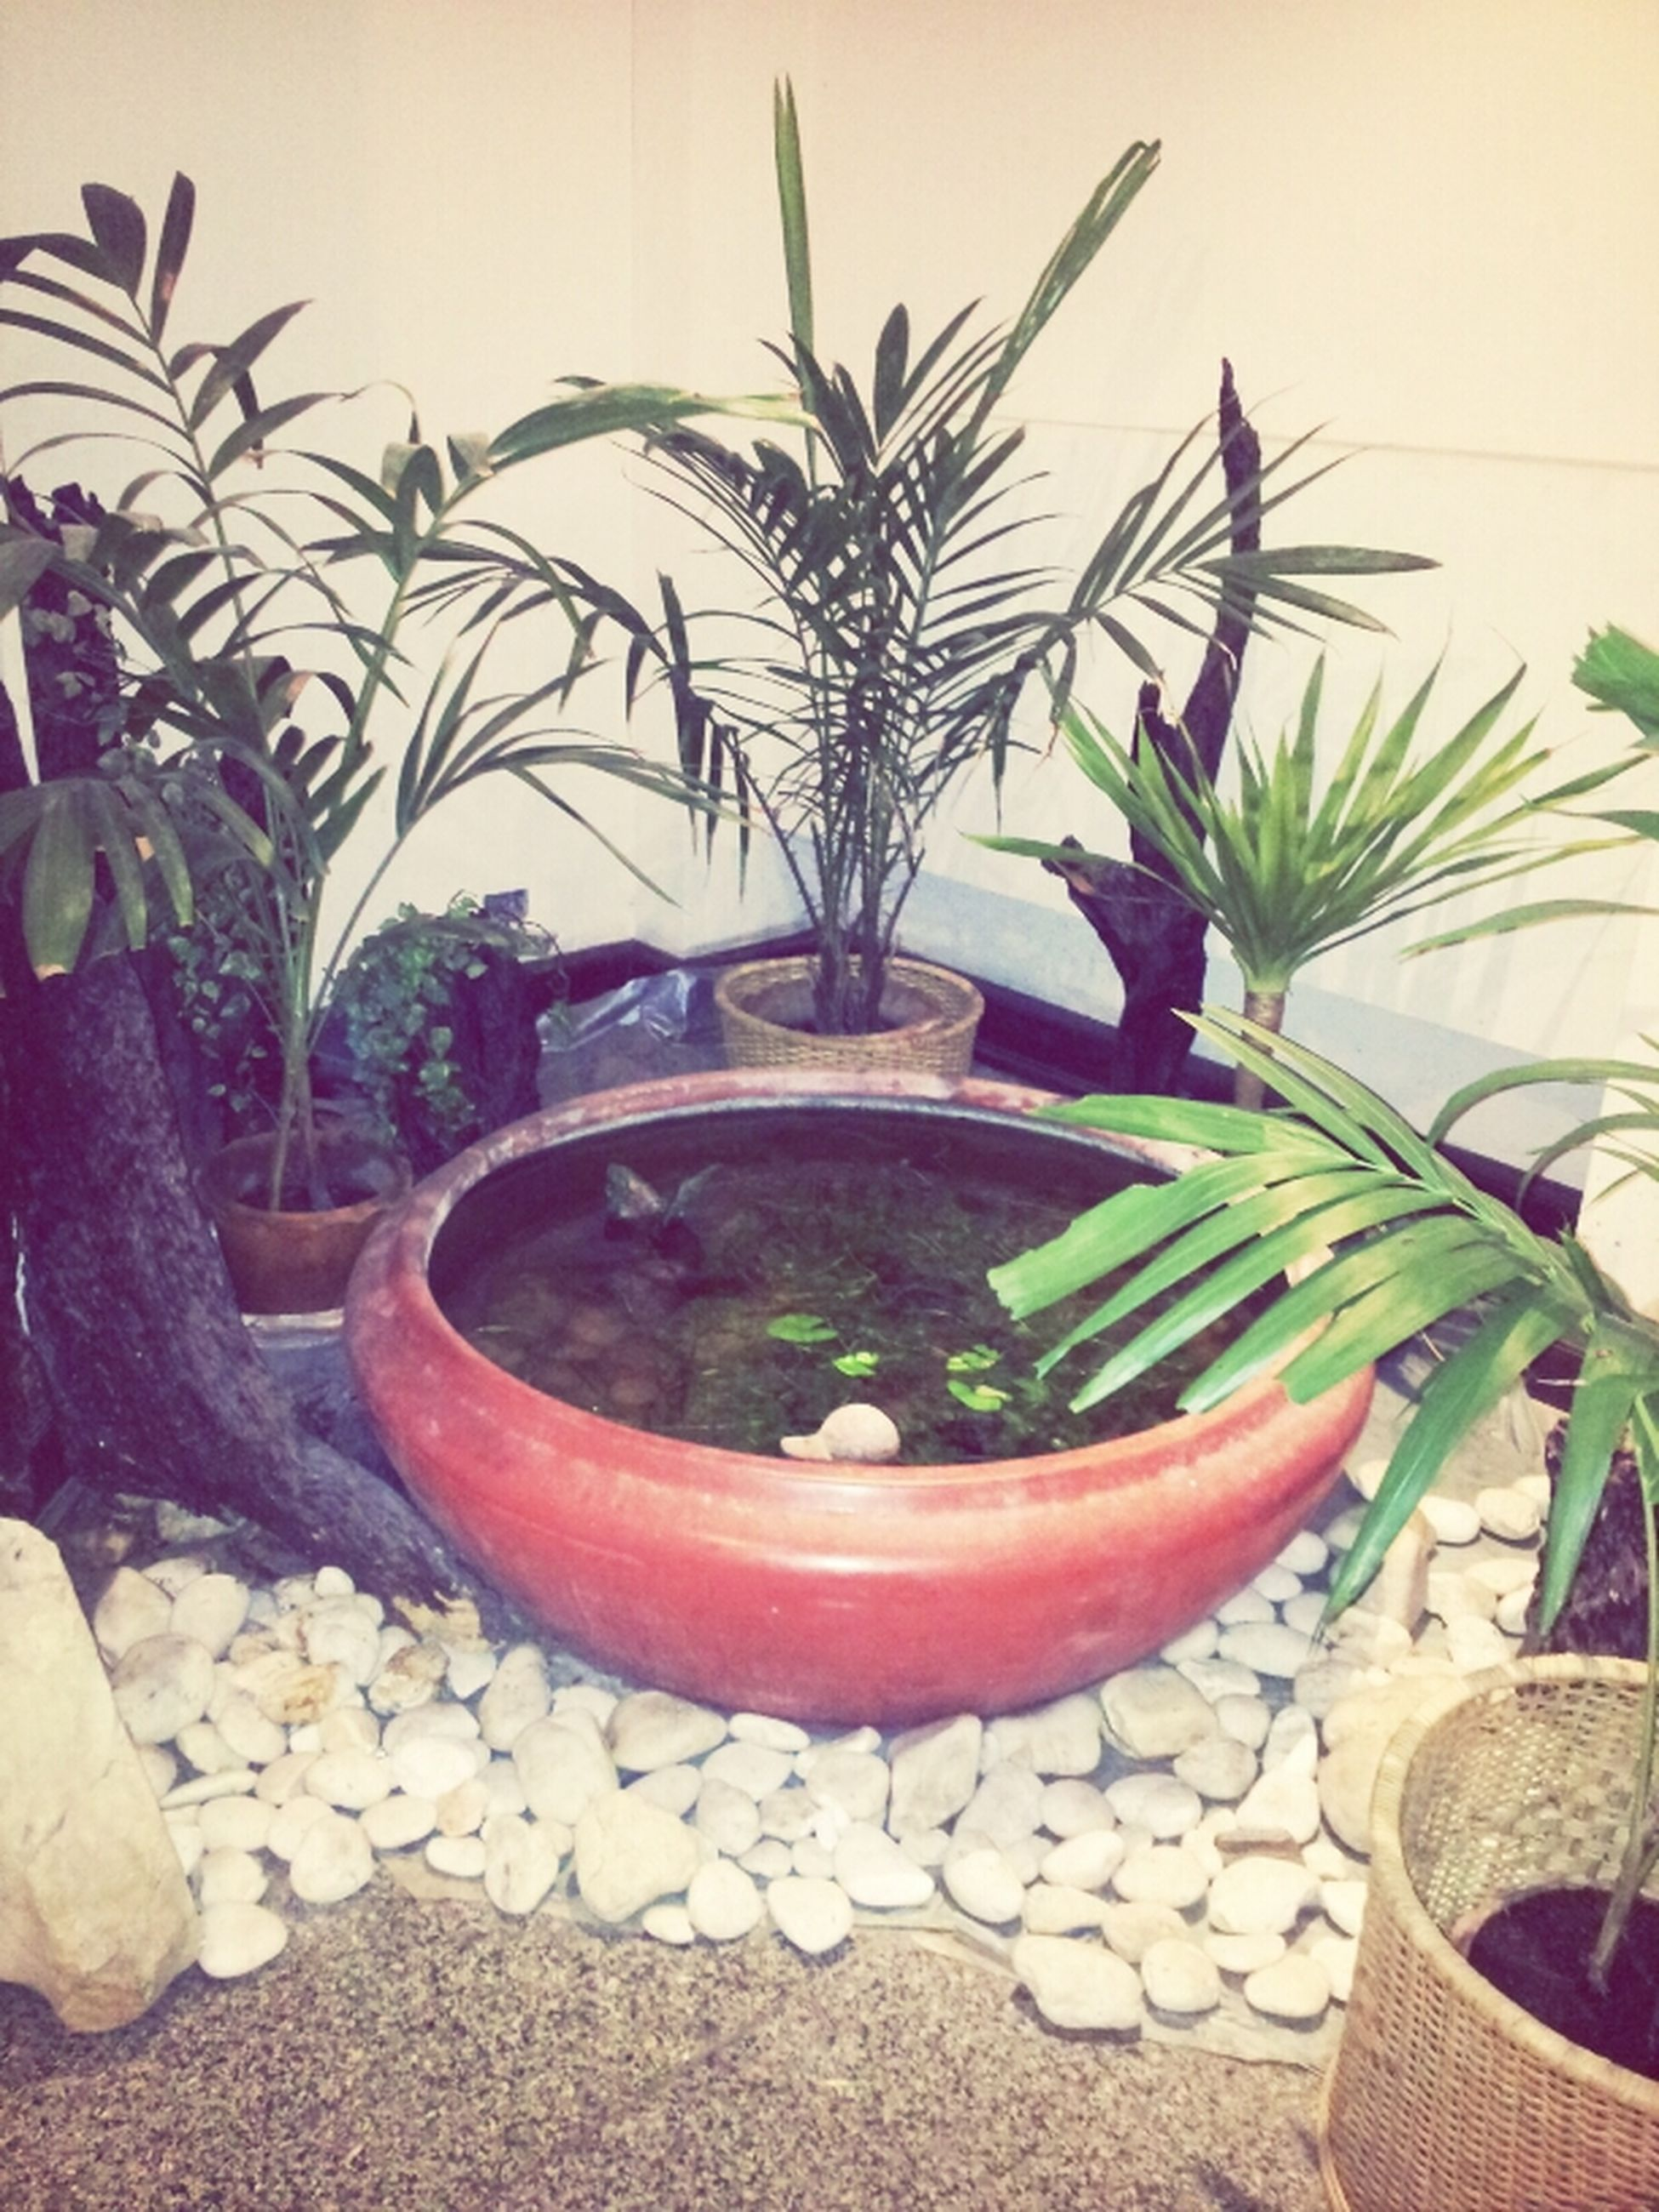 potted plant, plant, growth, leaf, nature, day, chair, sunlight, tree, palm tree, outdoors, water, green color, no people, wall - building feature, table, relaxation, beauty in nature